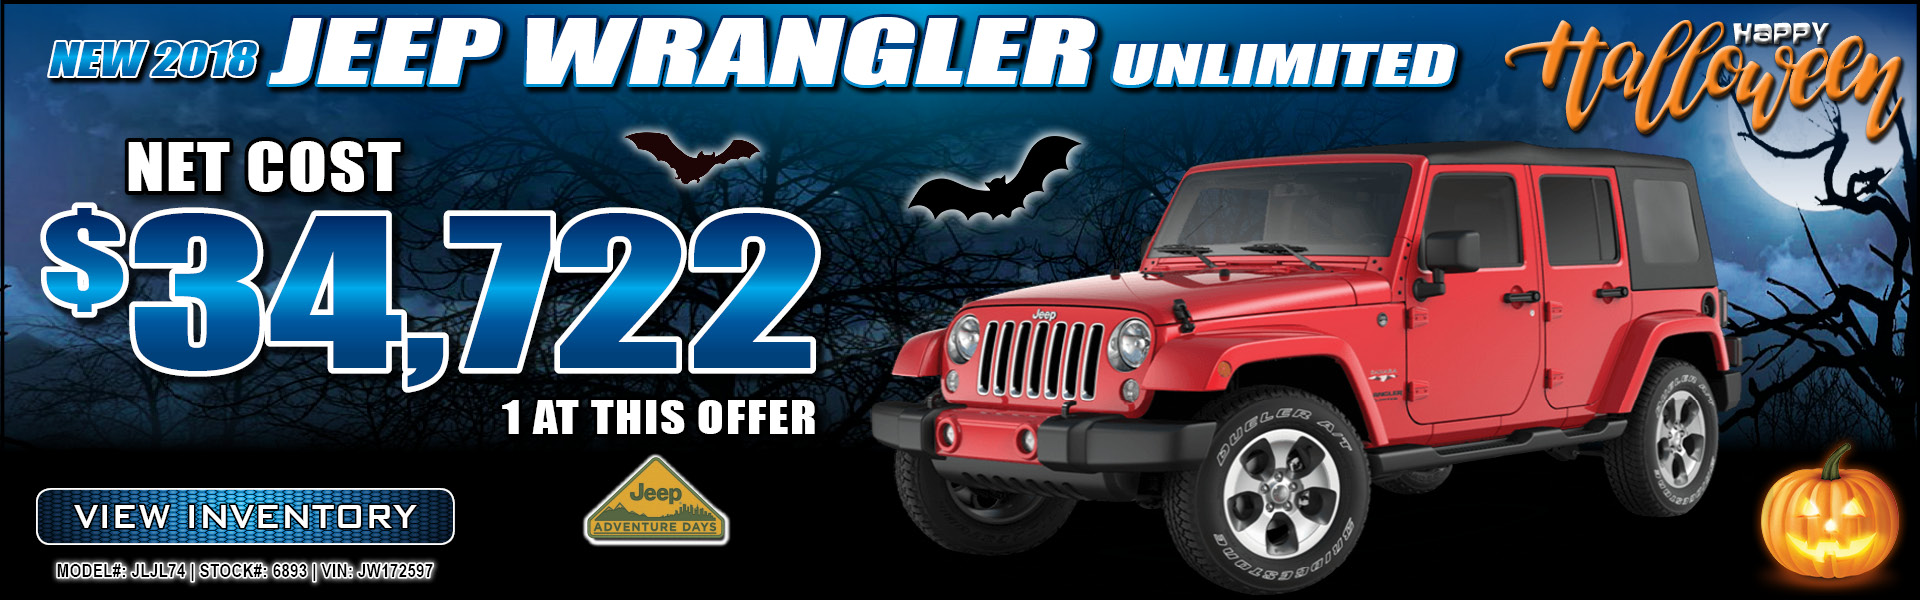 Jeep Wrangler Unlimited $34,722